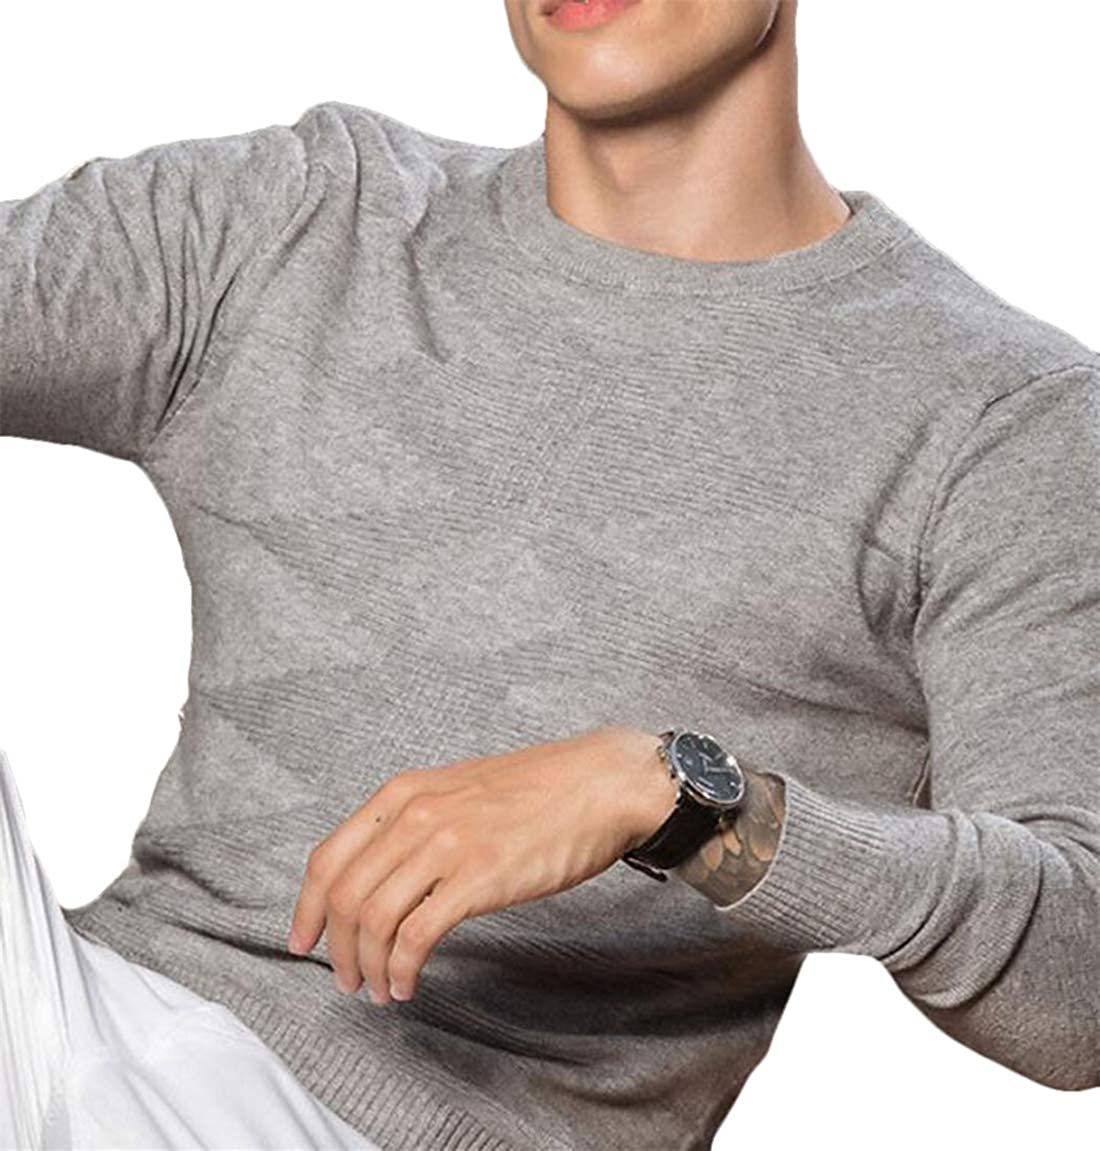 Domple Mens Casual Crewneck Soft Slim Knitted Pullover Long Sleeve Rhombus Sweater